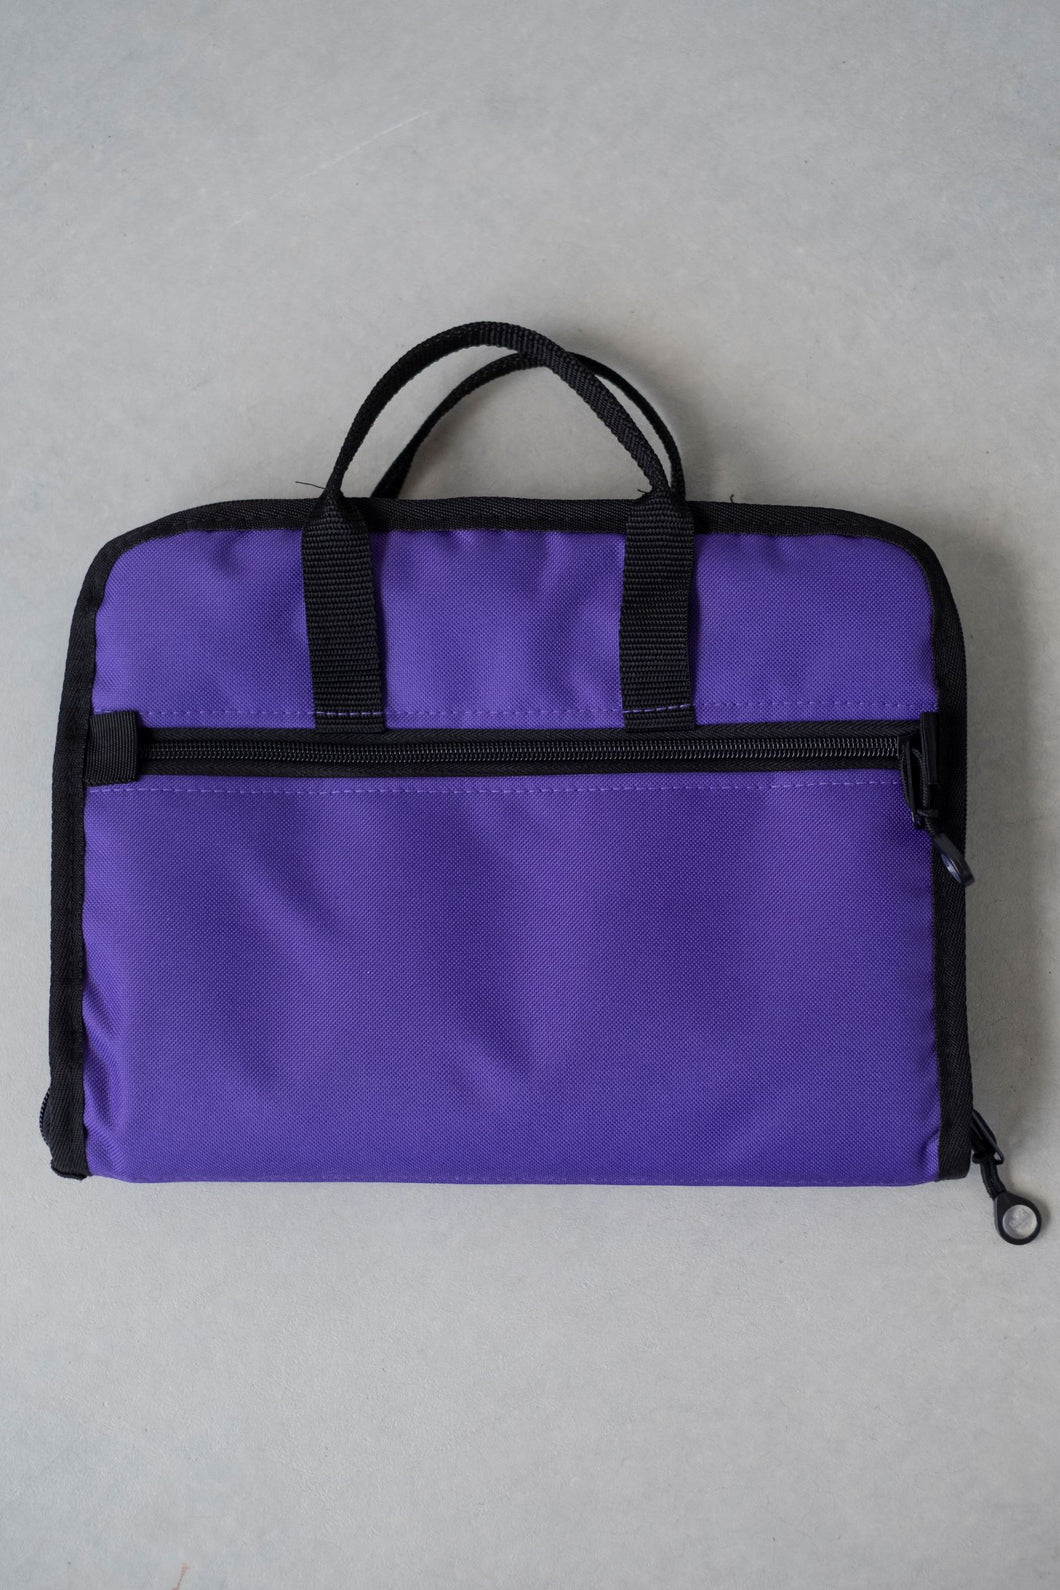 Notions Bag - Purple